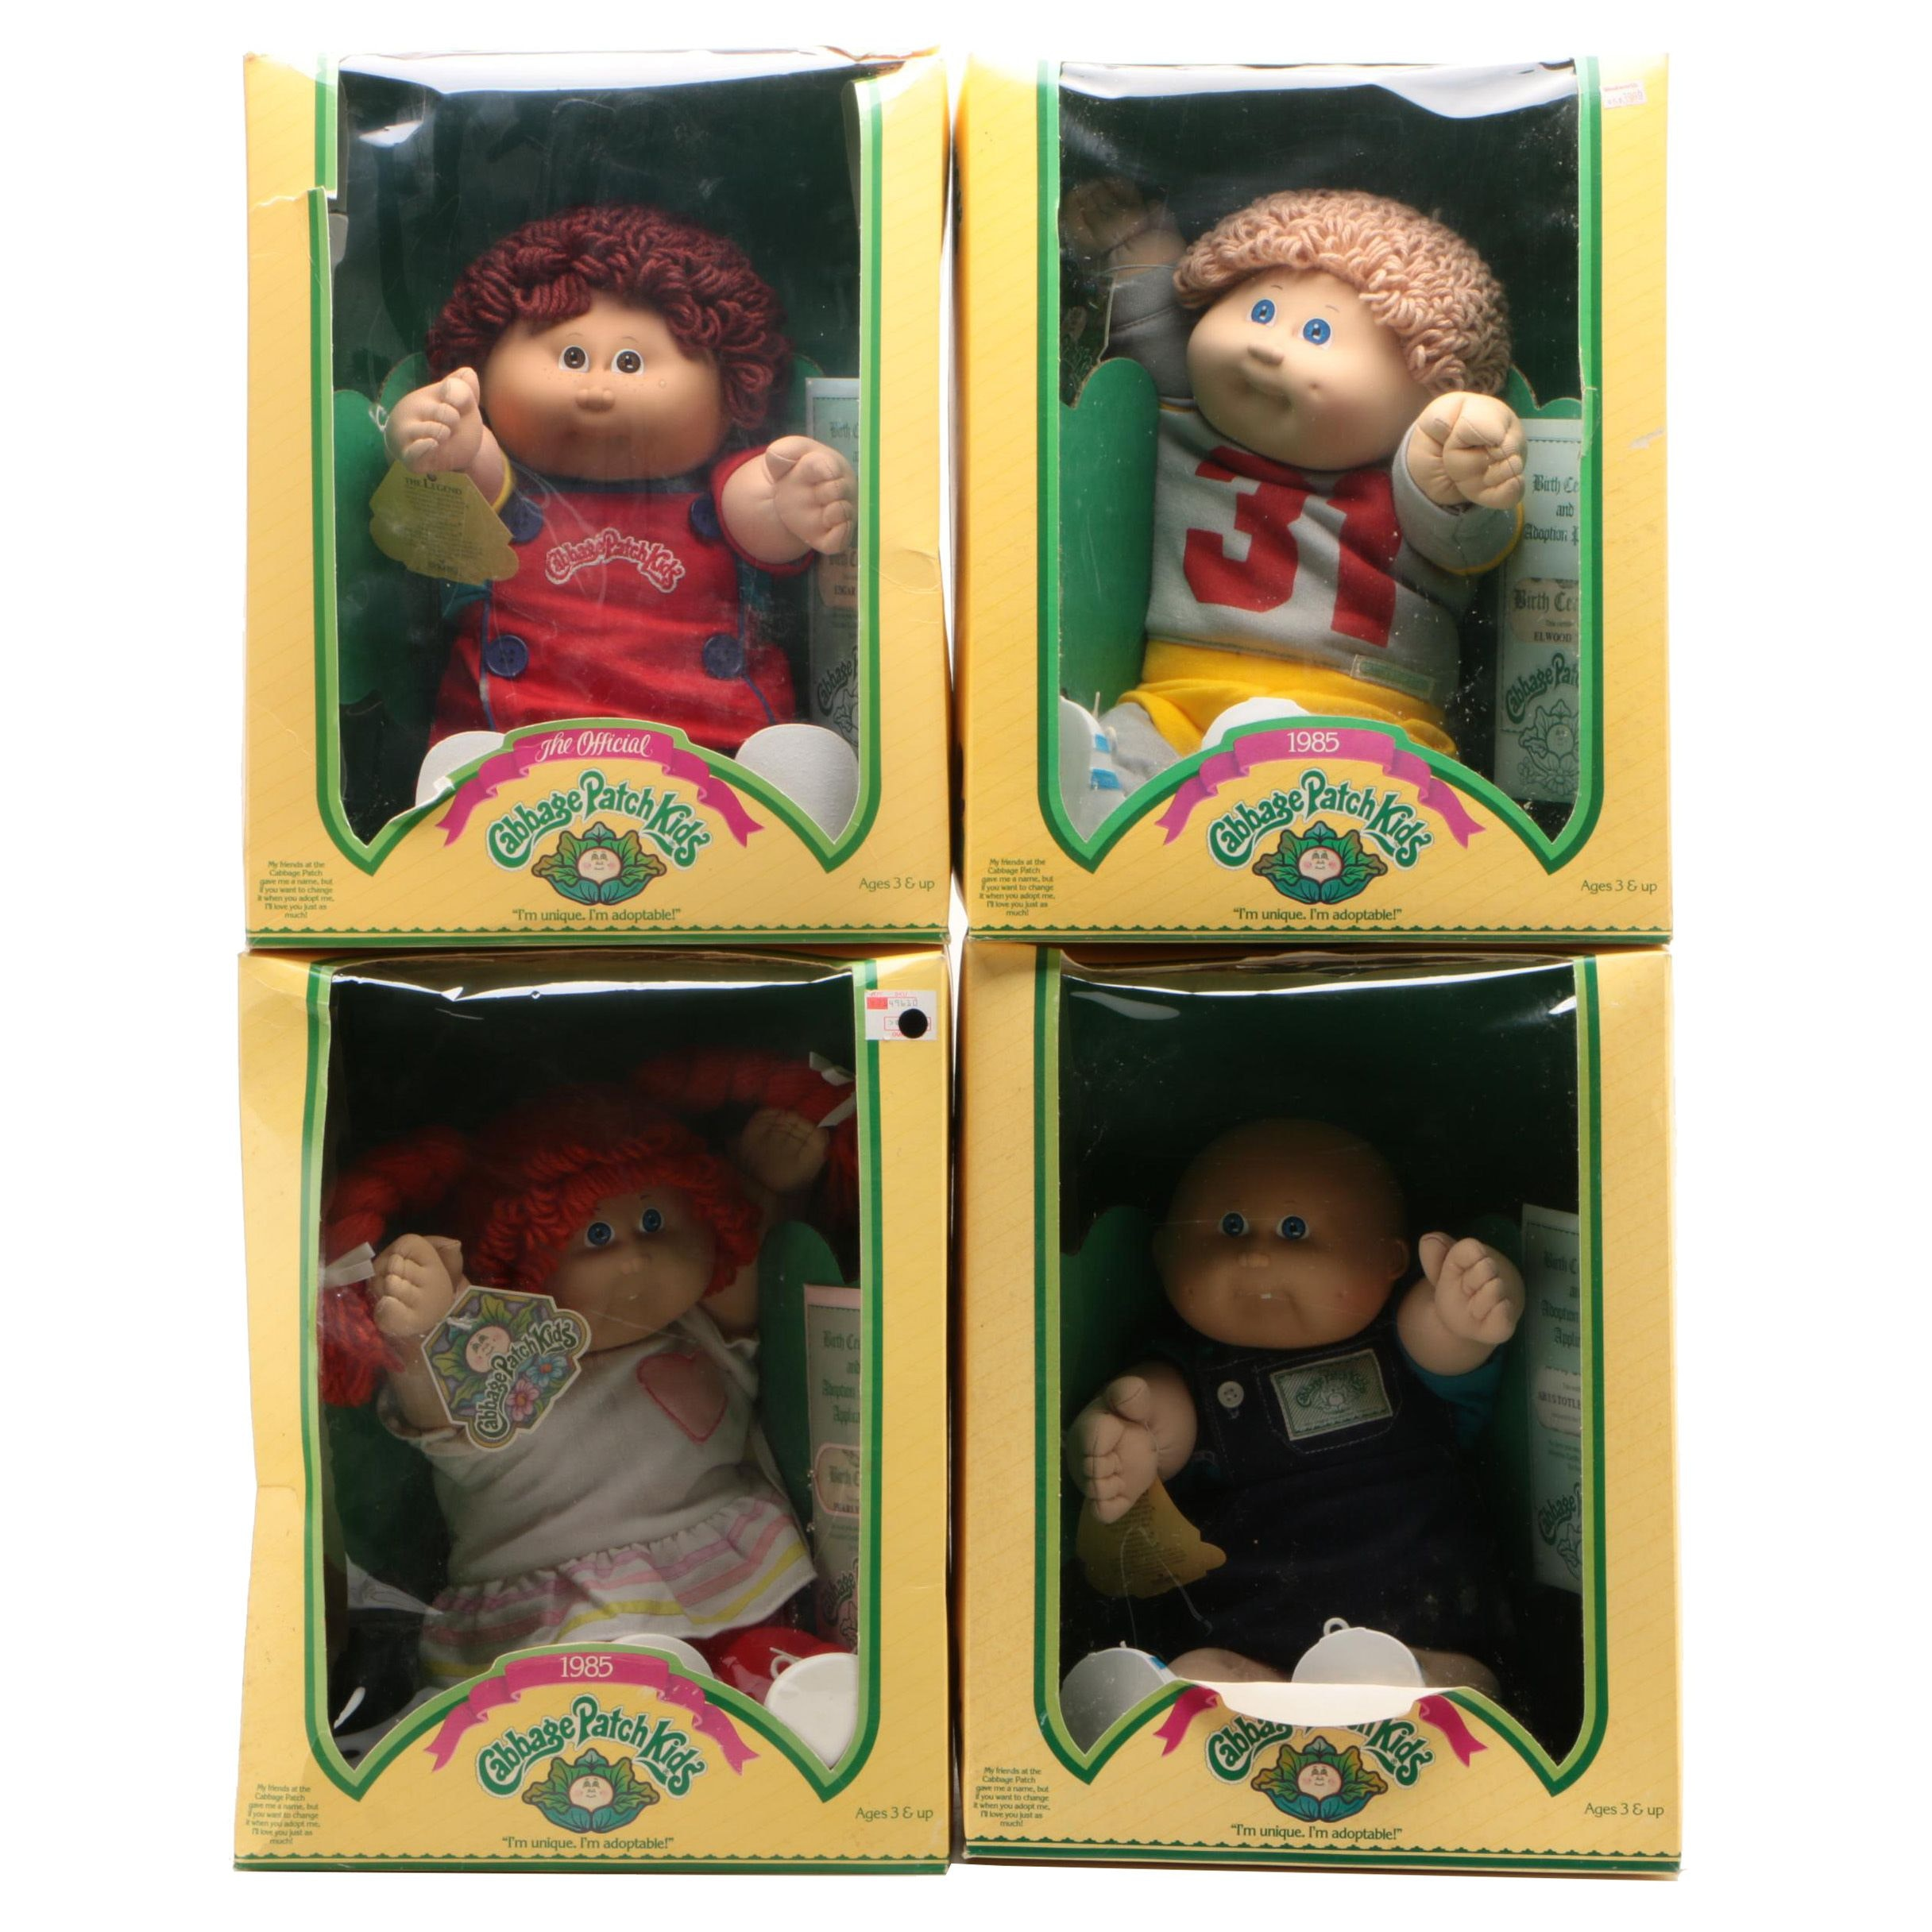 Coleco Cabbage Patch Kids Dolls, Mid-1980s